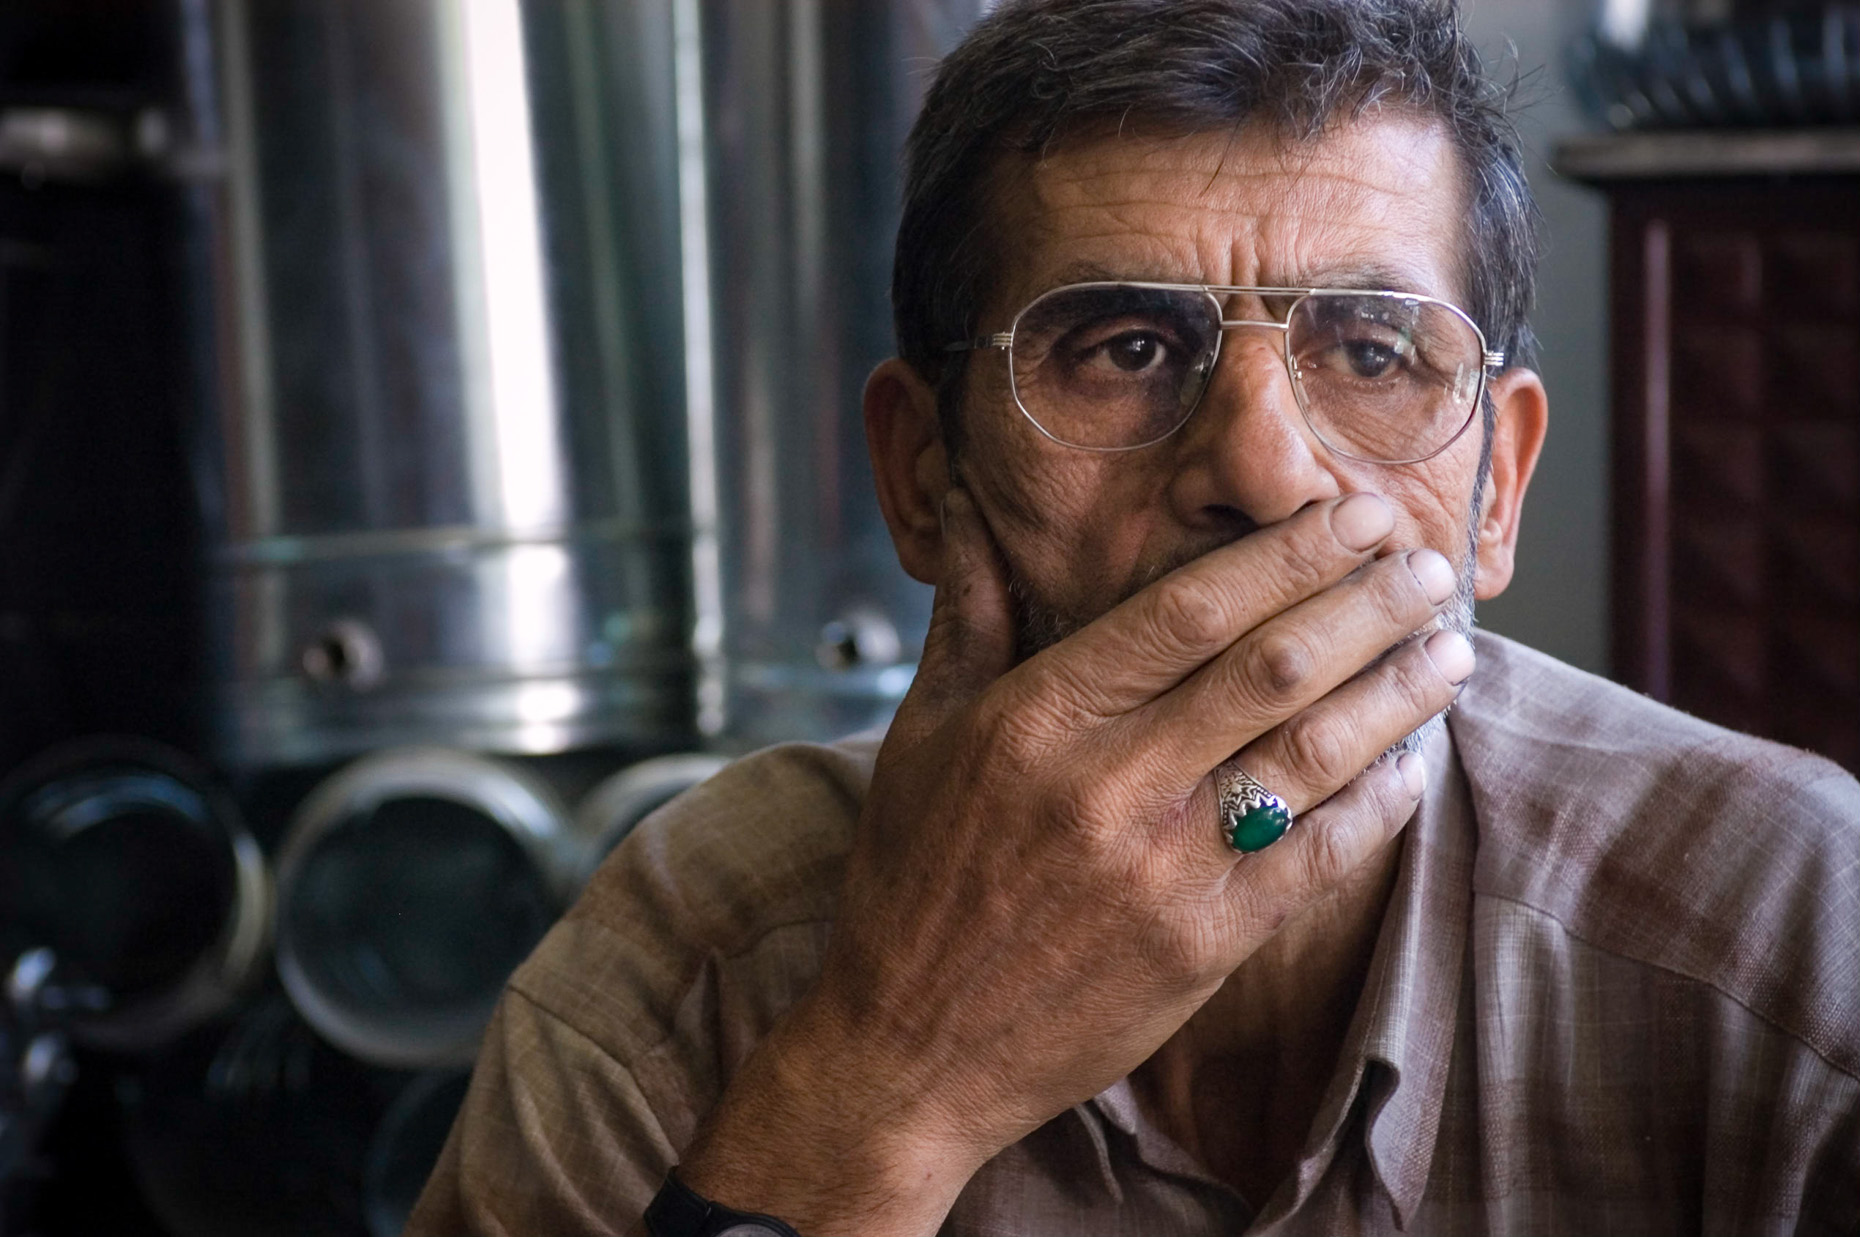 Portrait of older metal worker in Grand Bazaar, Konya, Turkey.